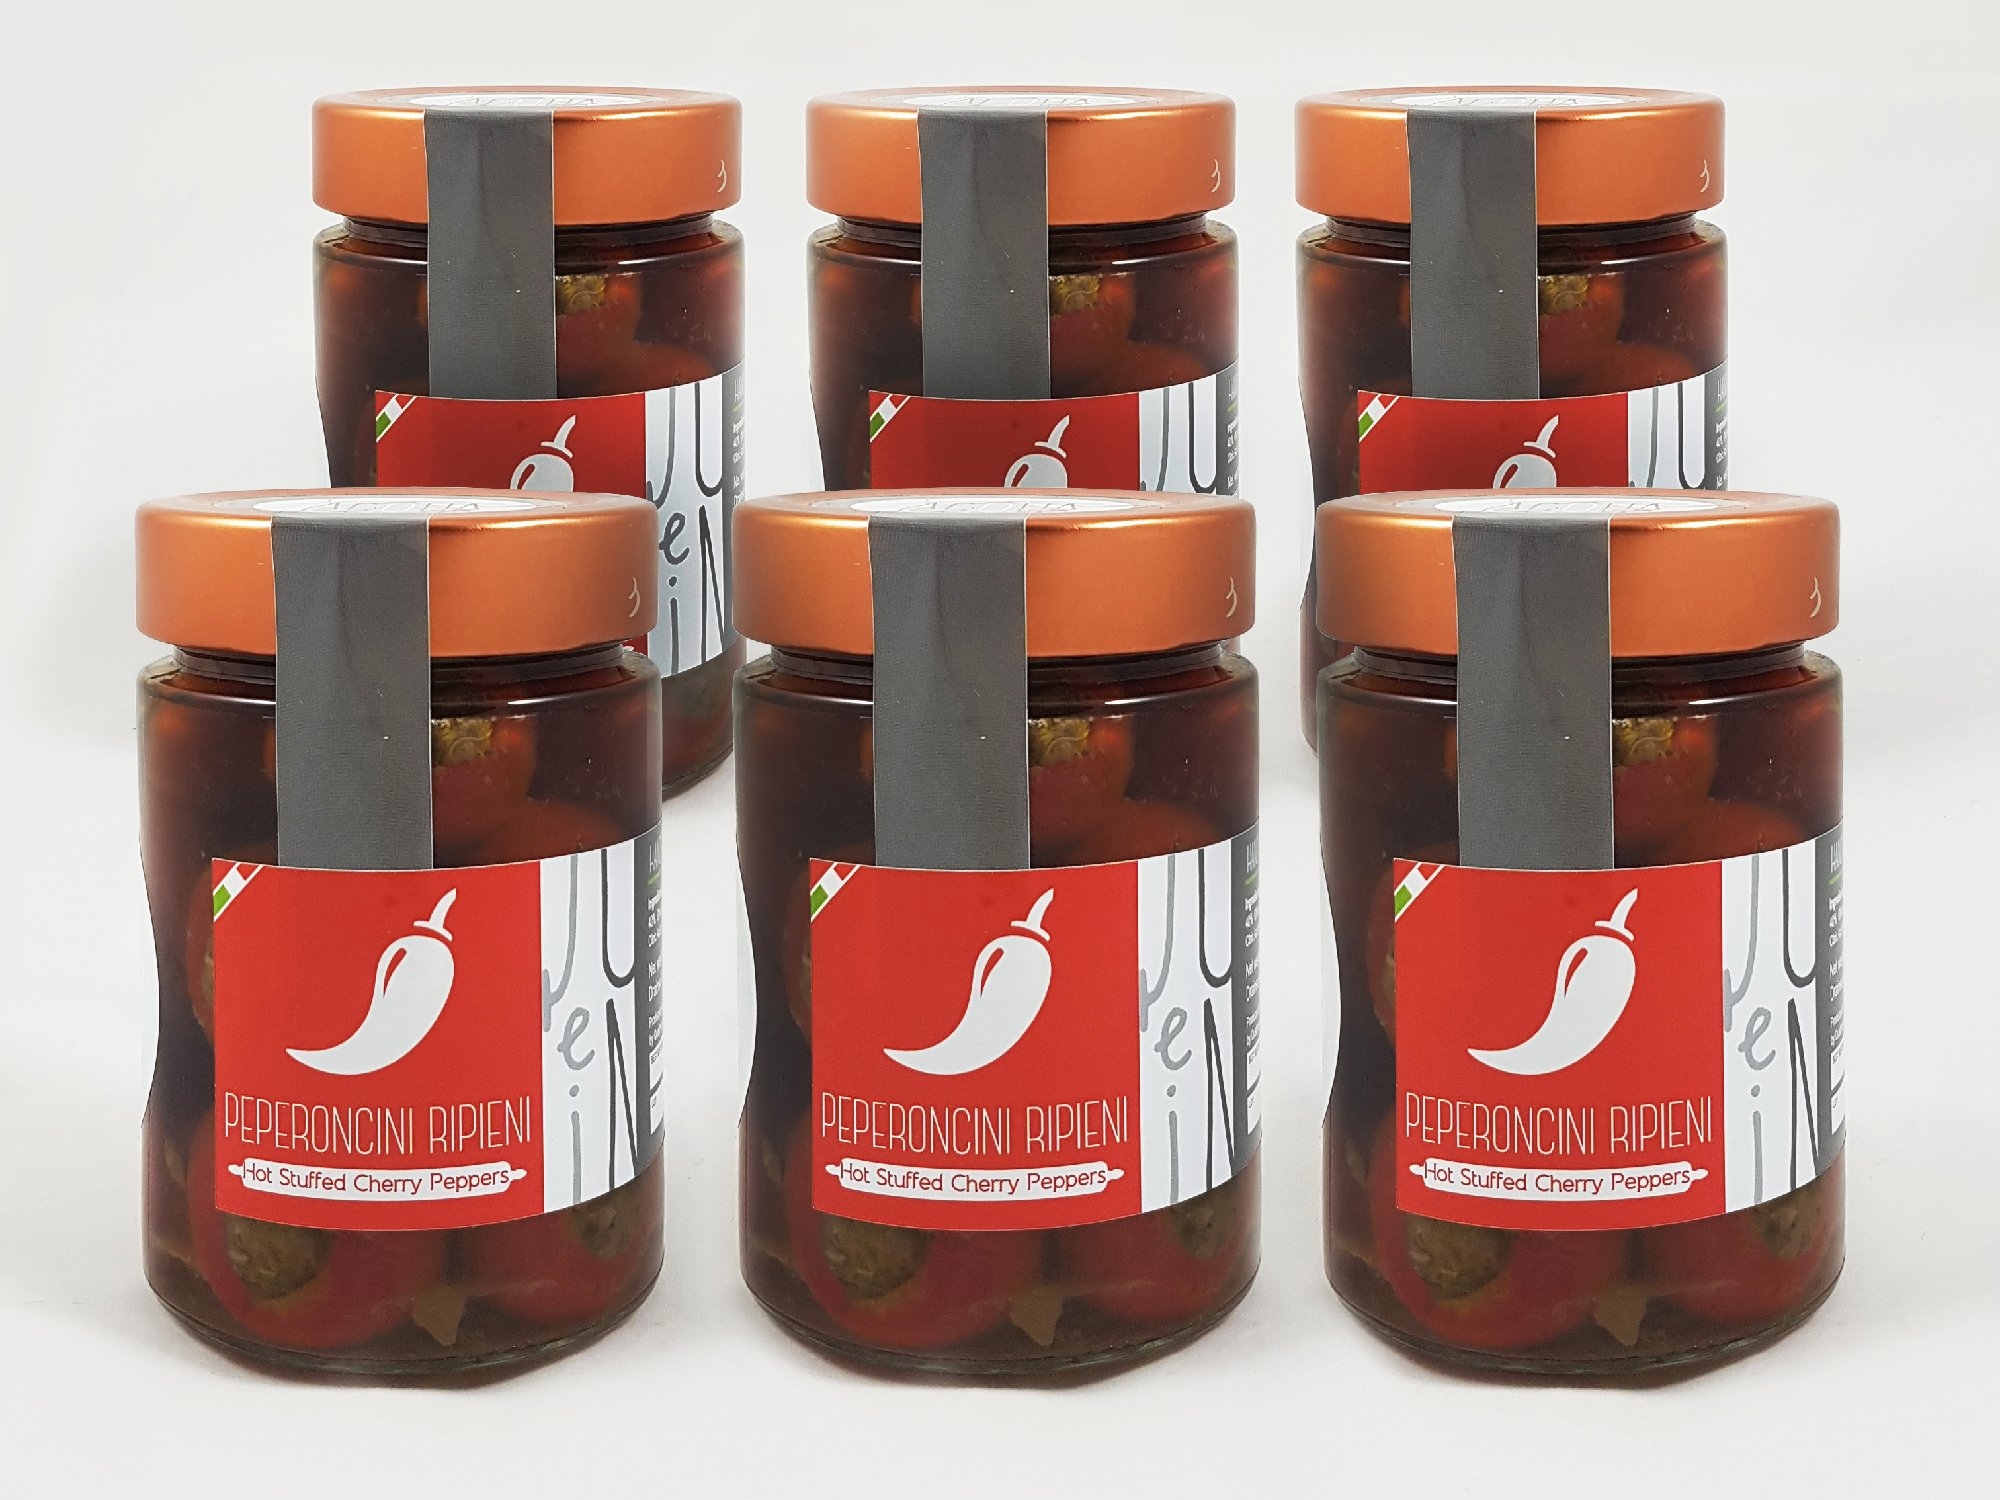 Hot Stuffed Cherry Peppers with Olives, Capers and Anchovies in E.V.O. Oil pack of 6